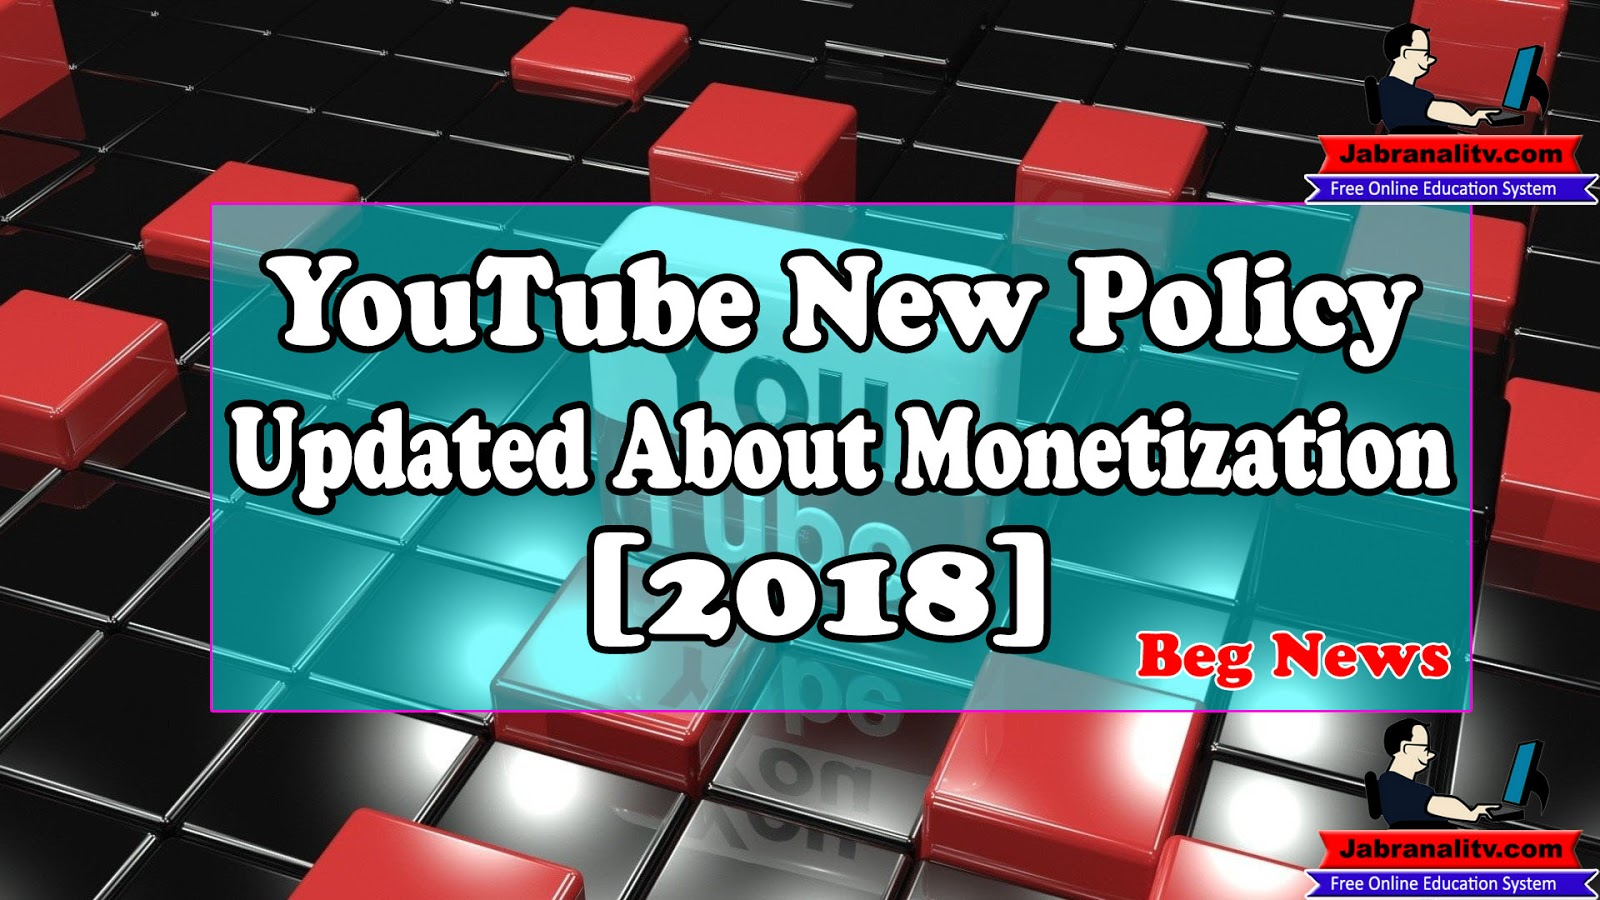 New YouTube Policy Updated About Monetization 2018